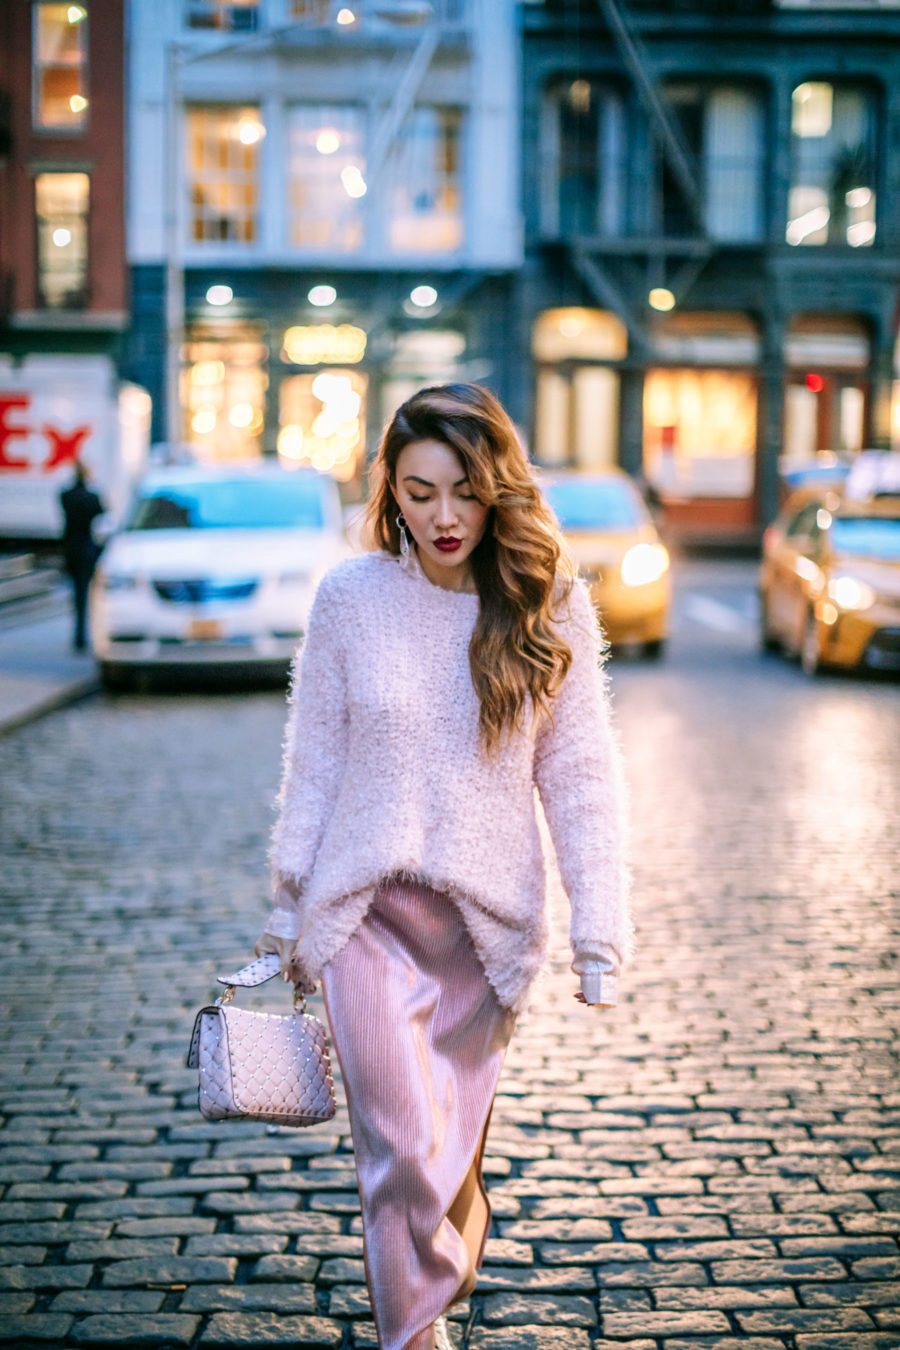 Best NYC Date night ideas, valentine's day outfit ideas - Pink Monochrome Outfit // Notjessfashion.com